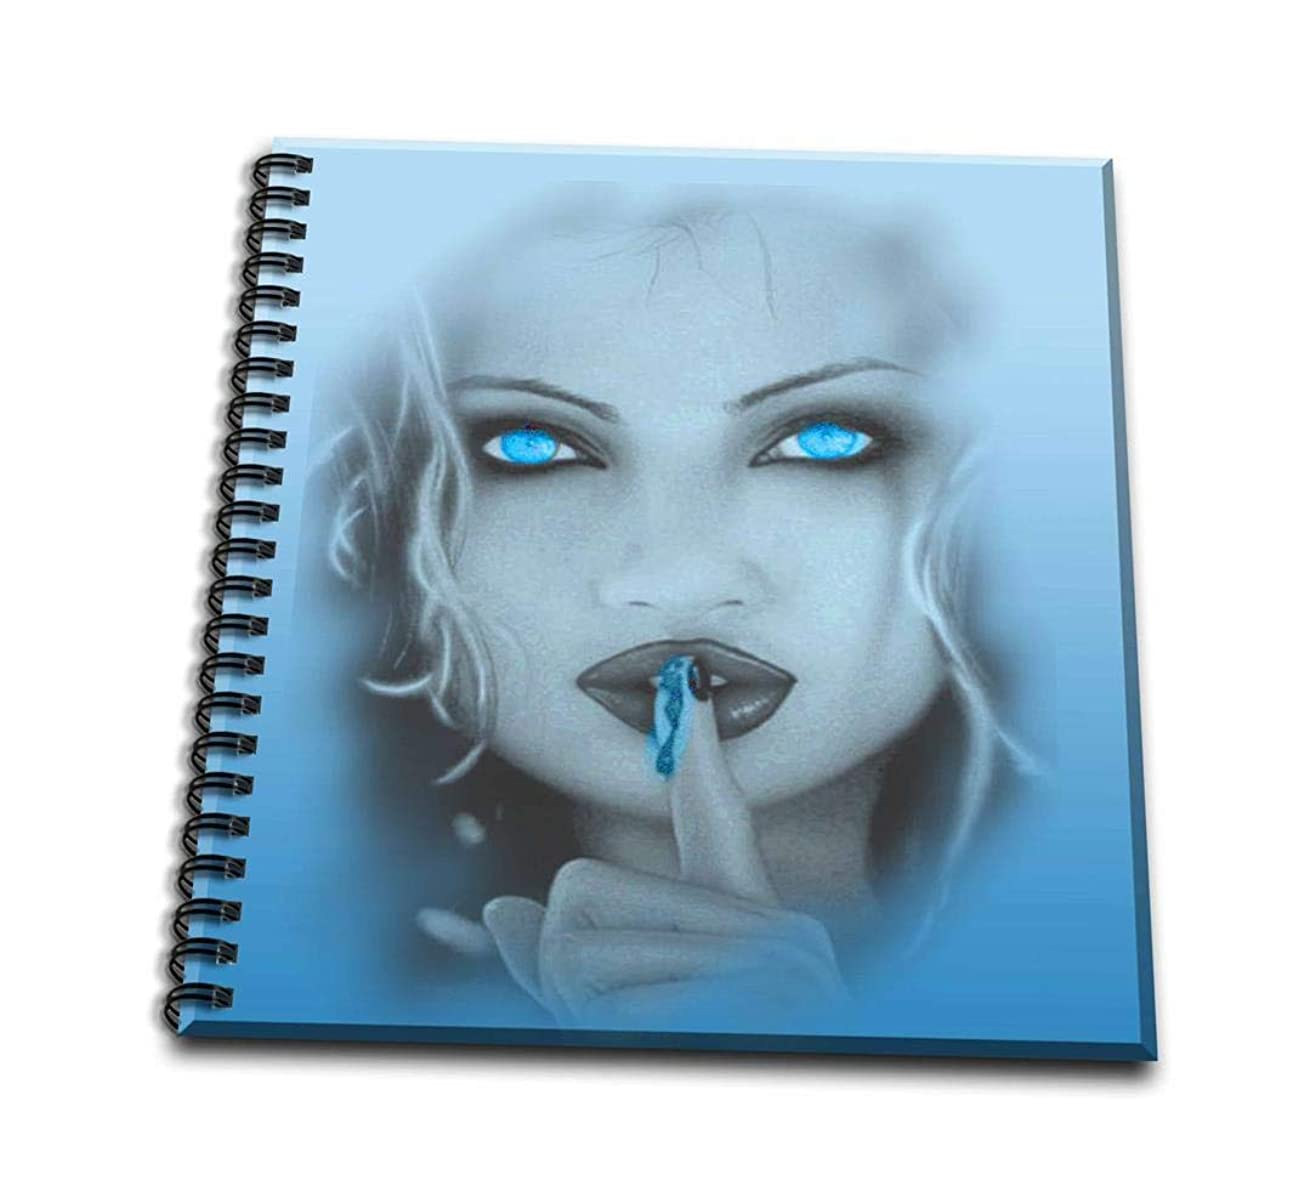 3dRose db_128819_2 Pastel Blue Gothic Lady Memory Book, 12 by 12